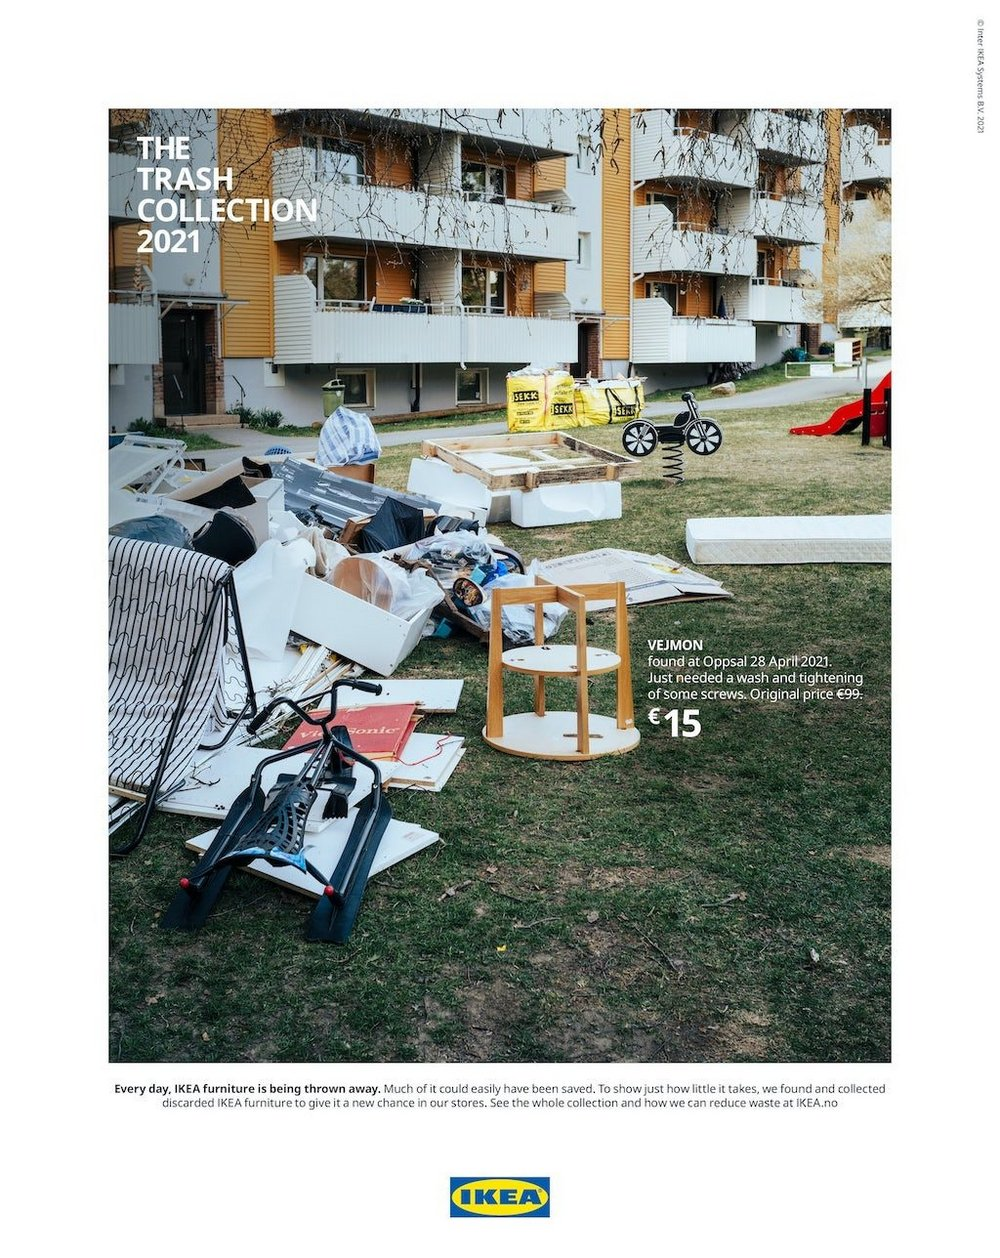 Body image for Ikea heroes junked furniture in sustainability campaign